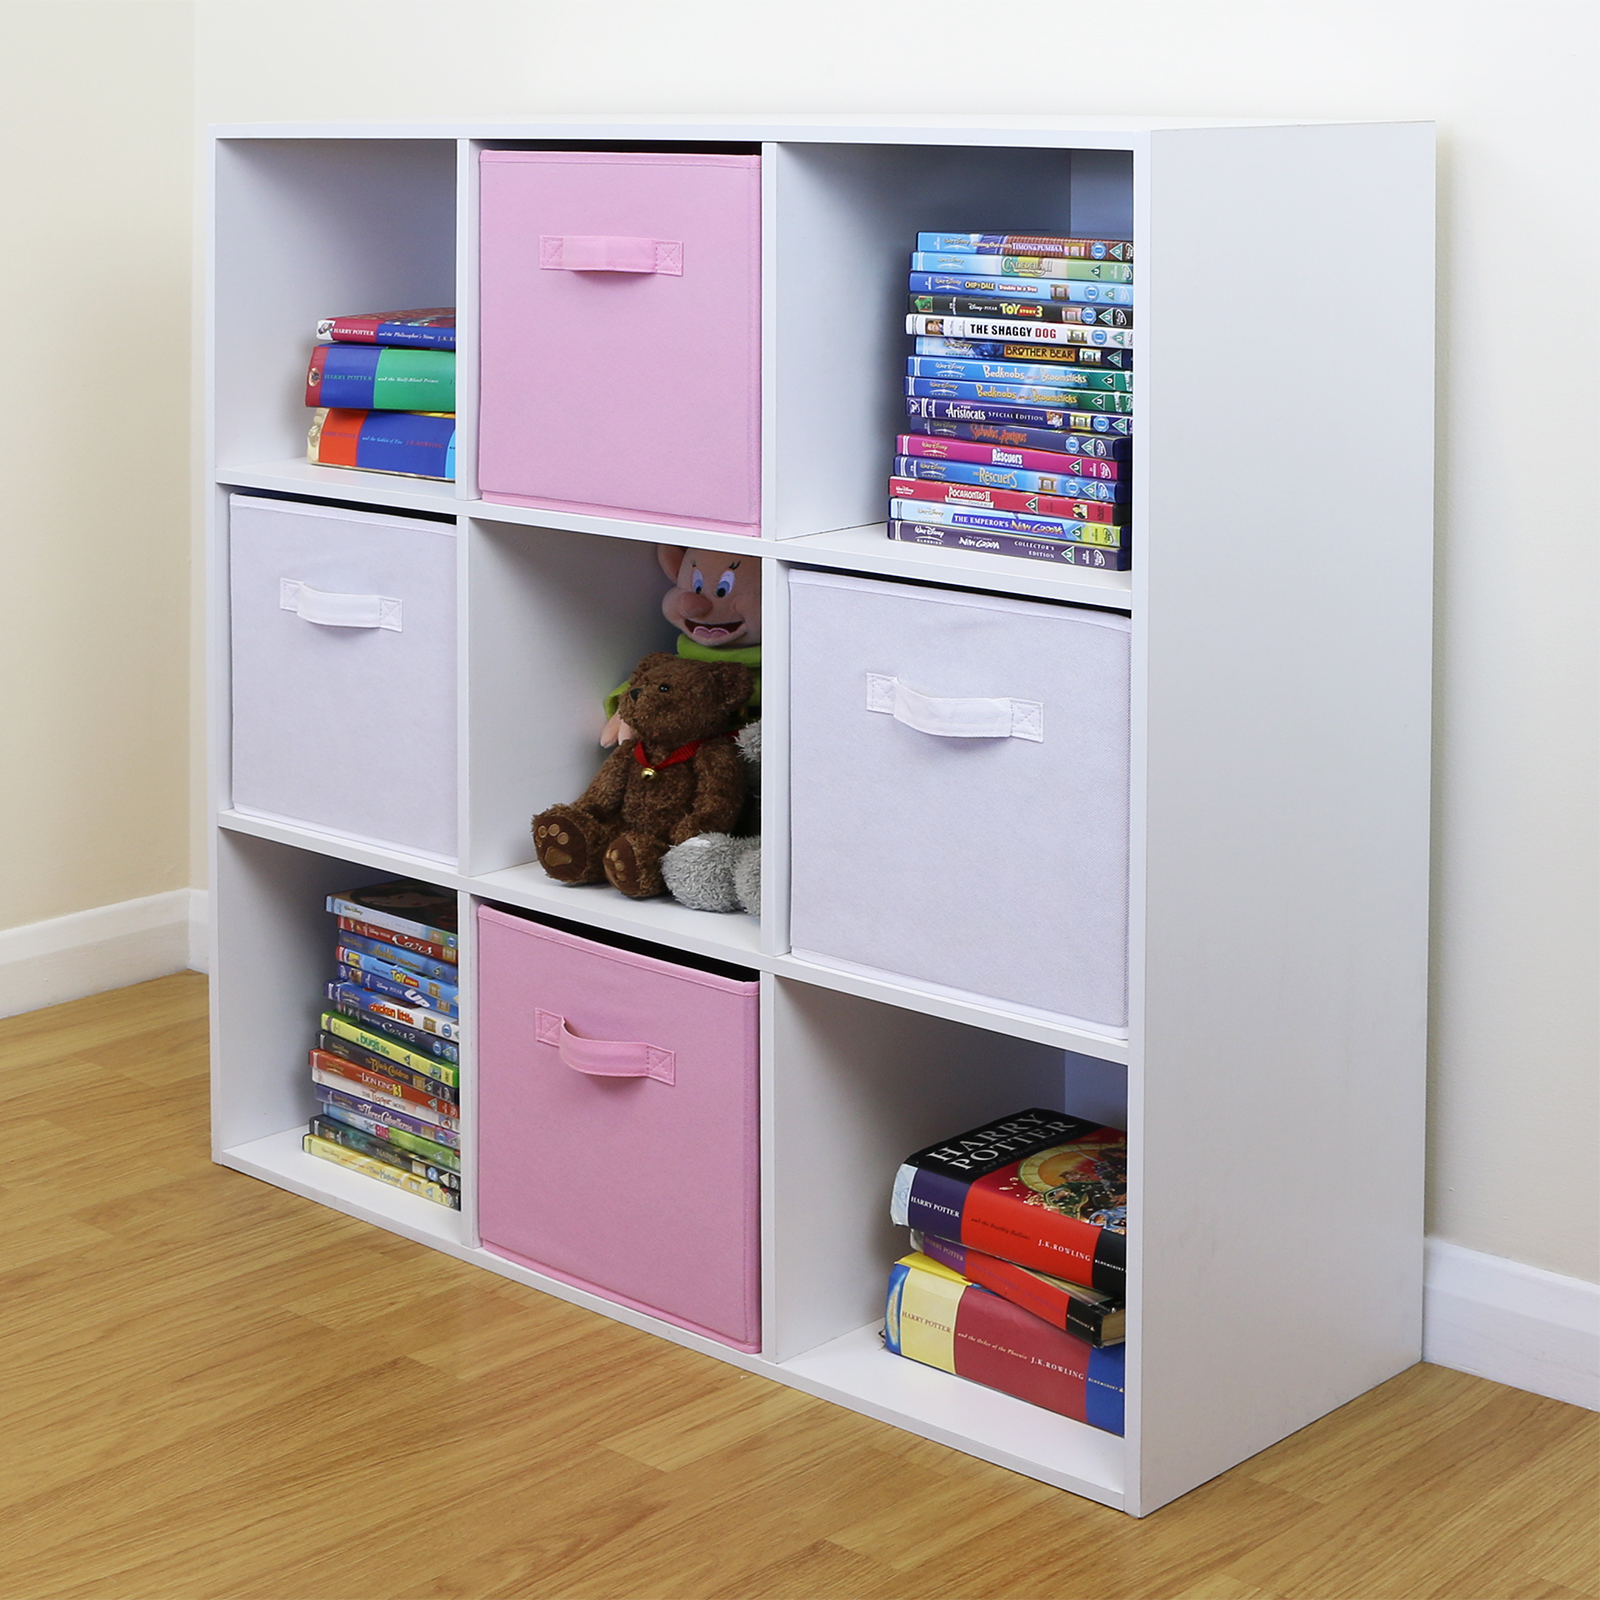 Details About 9 Cube Kids Pink & White Toy/games Storage Unit Girls/boys  Bedroom Shelves/boxes